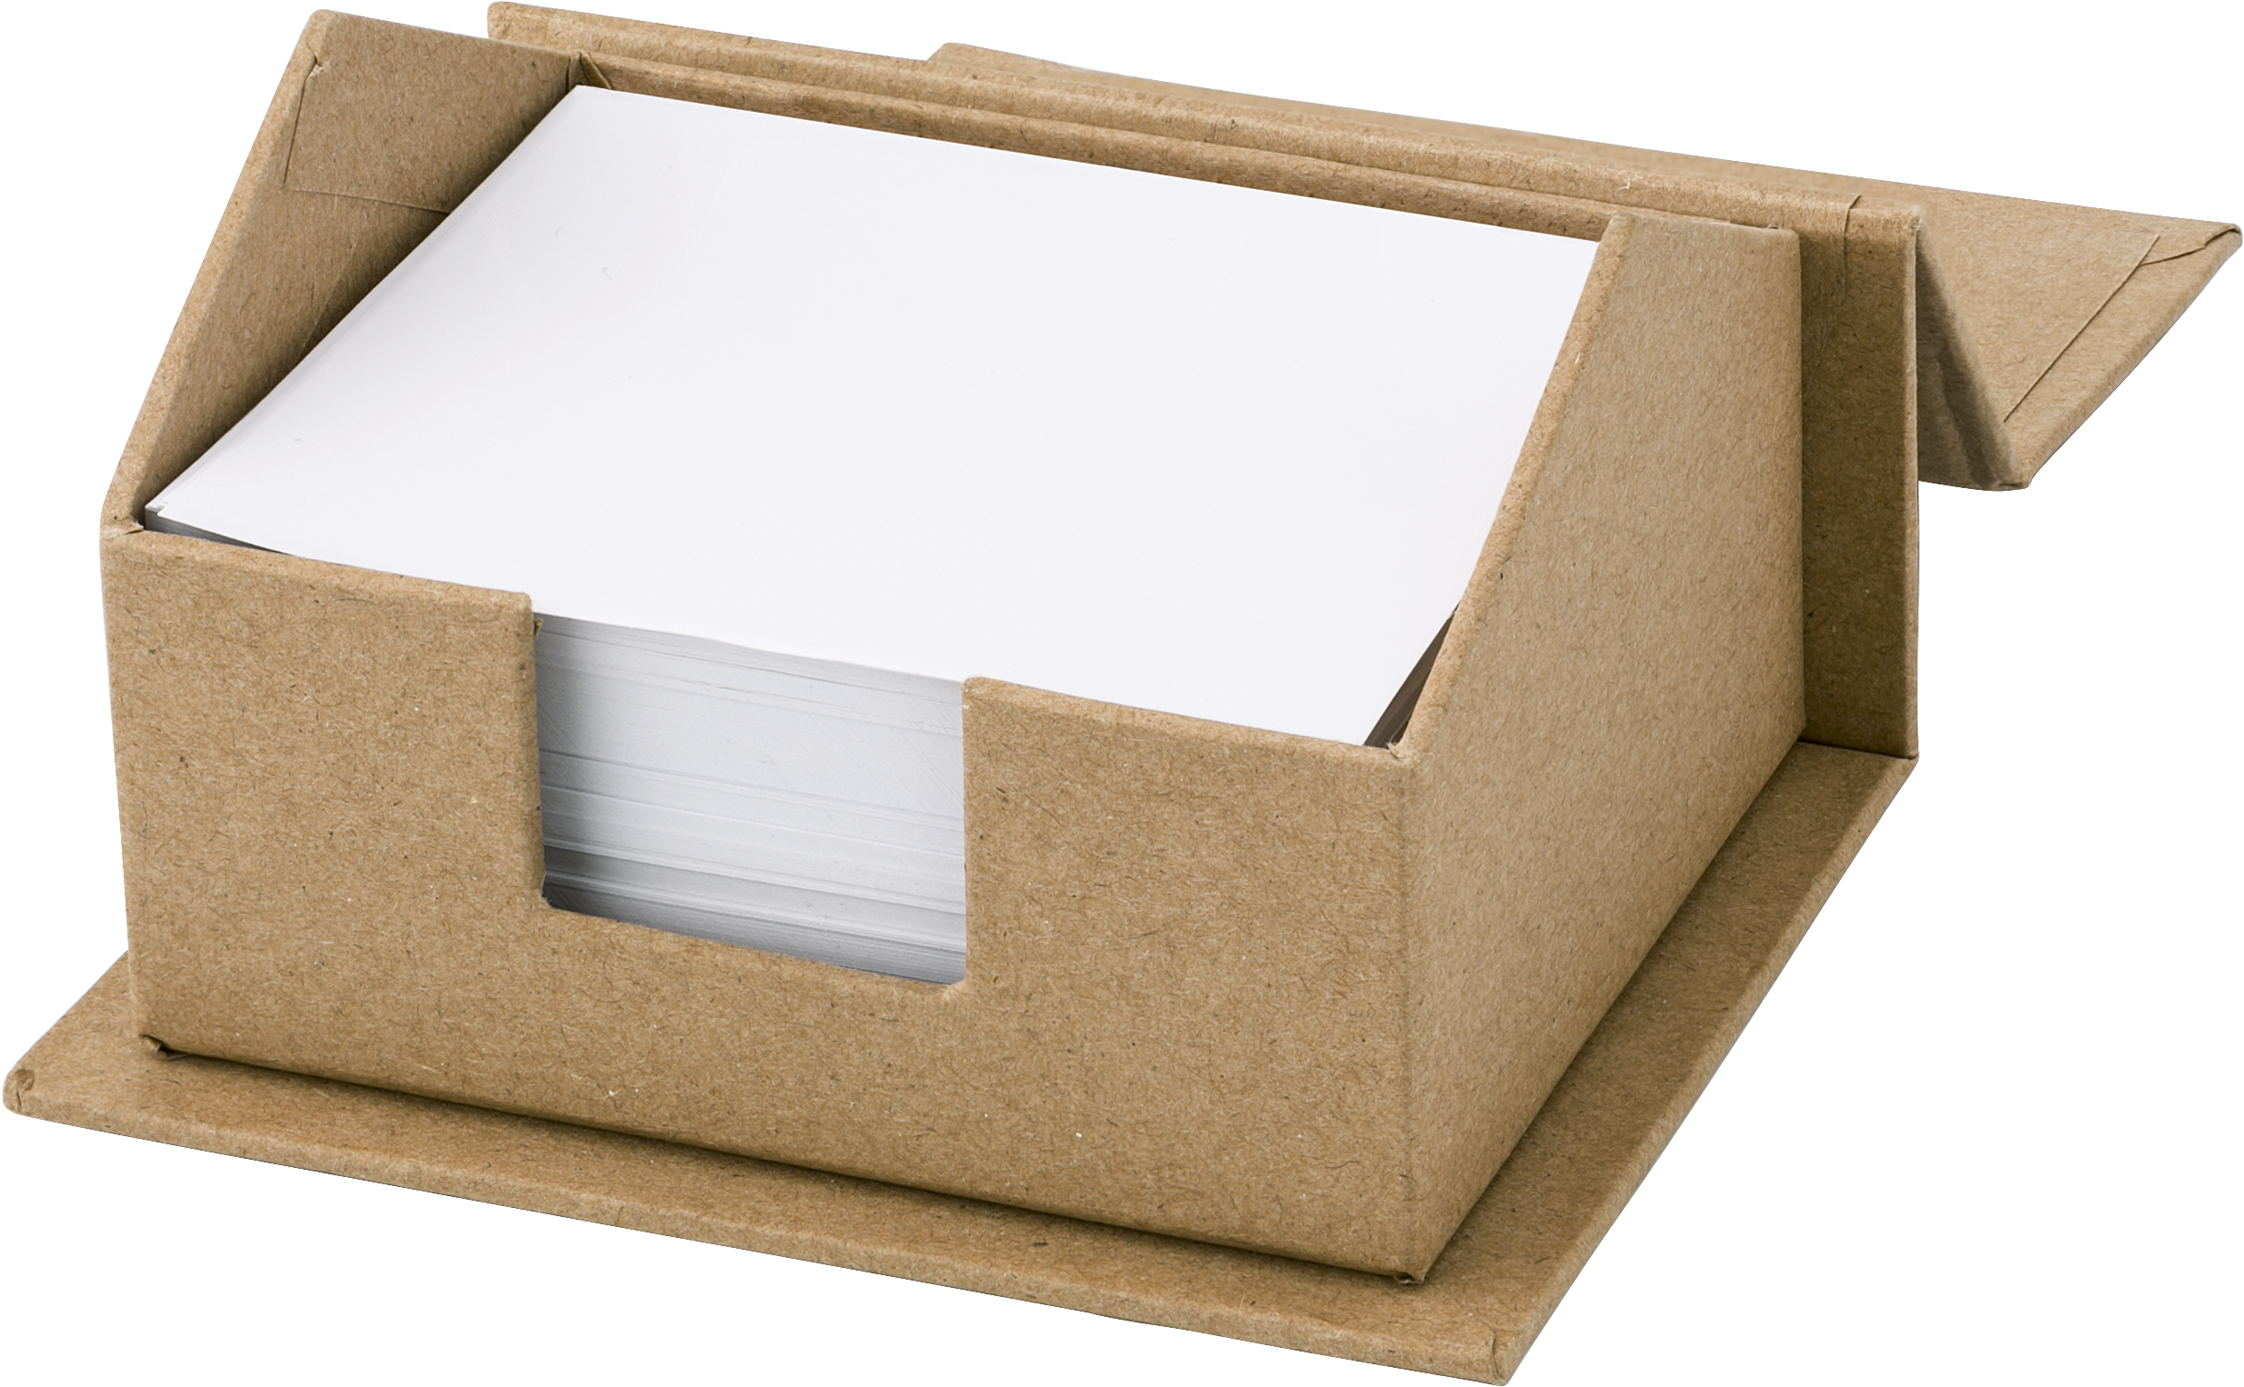 Branded House-shaped card memo holder.